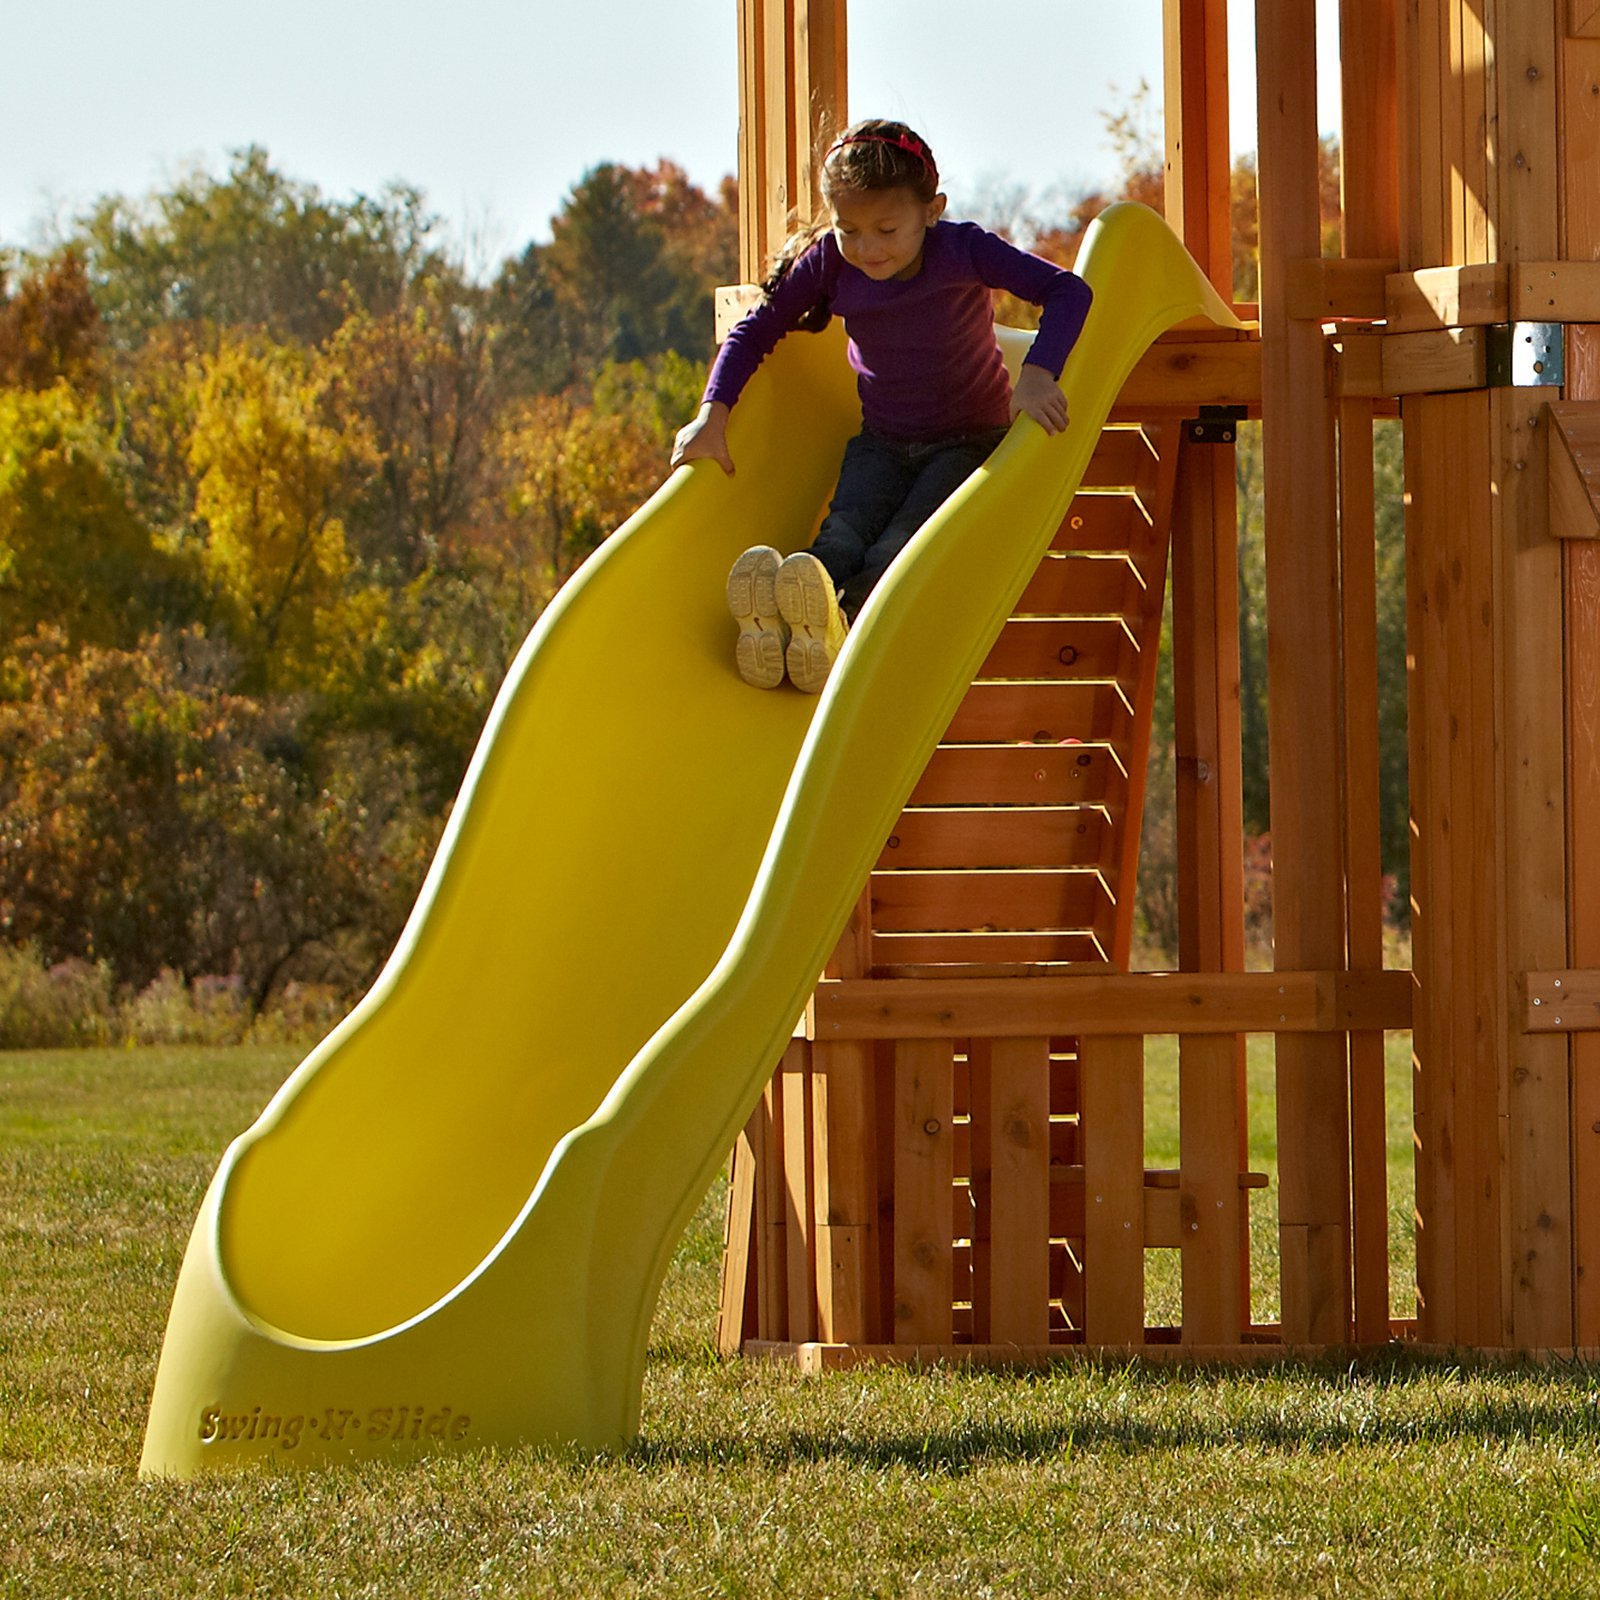 Swing-N-Slide NE 4720-1Y Alpine Wave Slide - Yellow